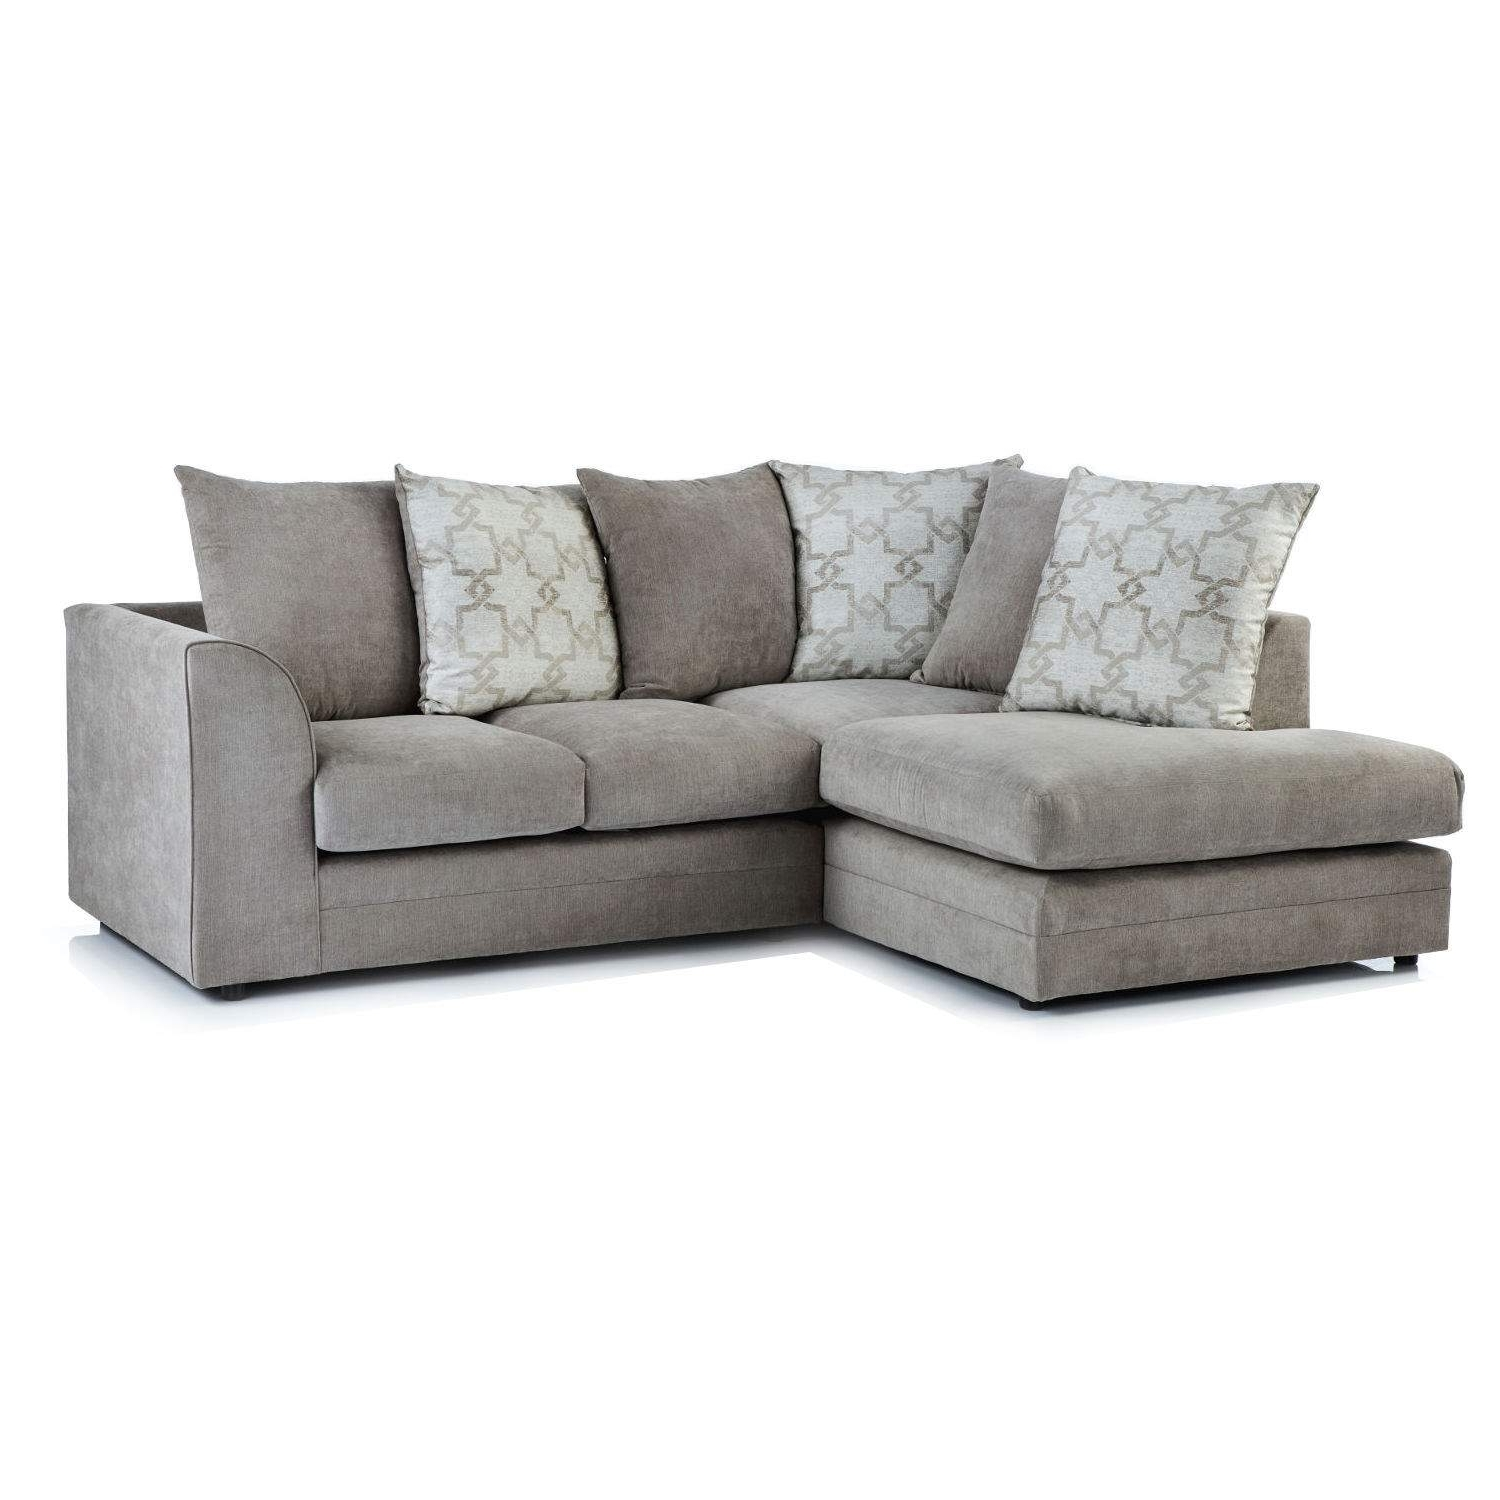 Washington Fabric Corner Chaise Sofa – Next Day Delivery Within Favorite Fabric Corner Sofas (View 7 of 20)